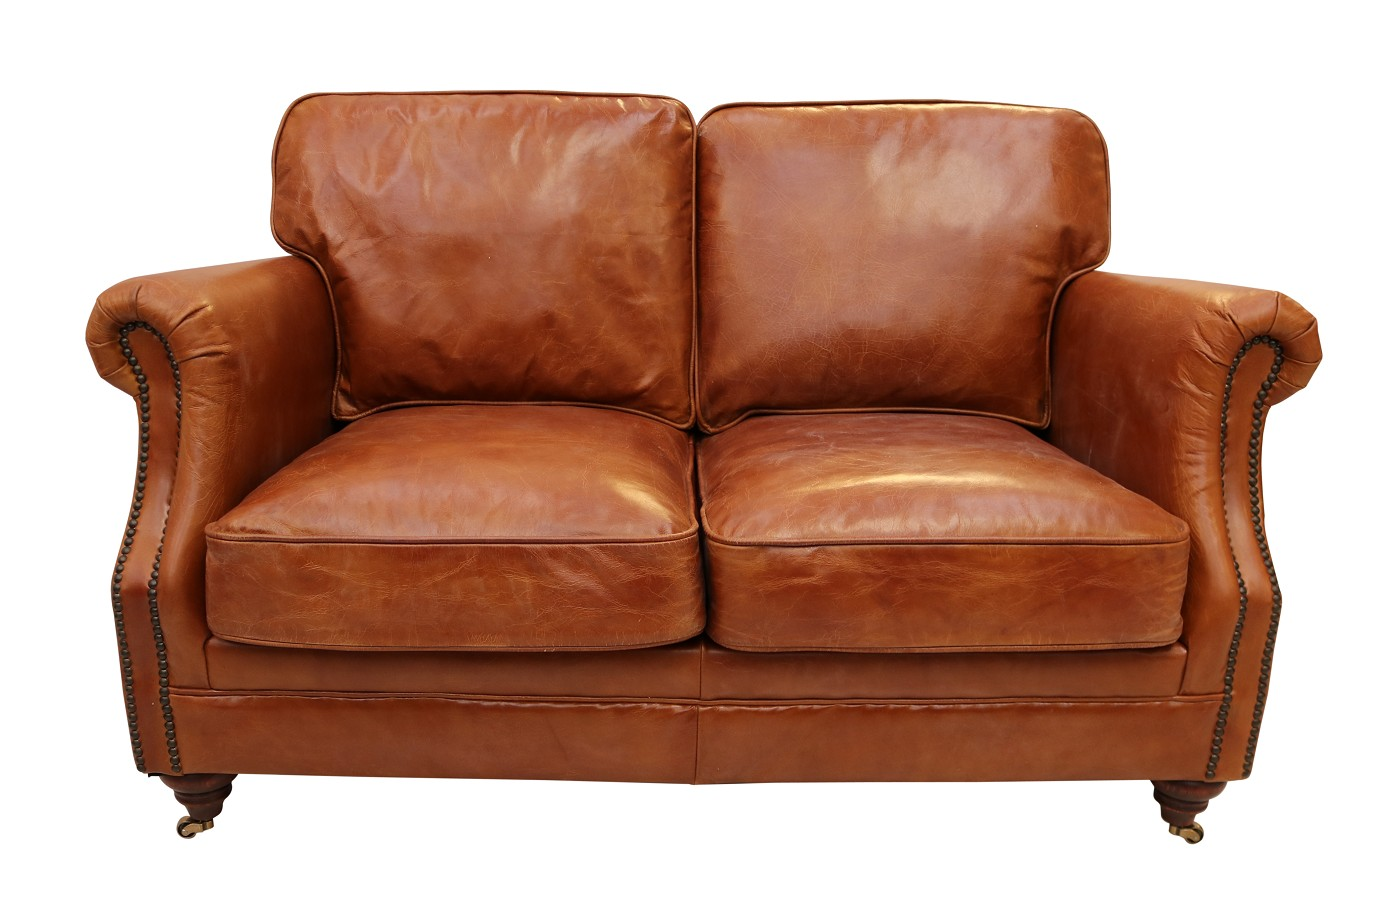 Picture of: Luxury Vintage Distressed Leather 2 Seater Settee Sofa Tan Vintage Furniture By Designer Sofas For You